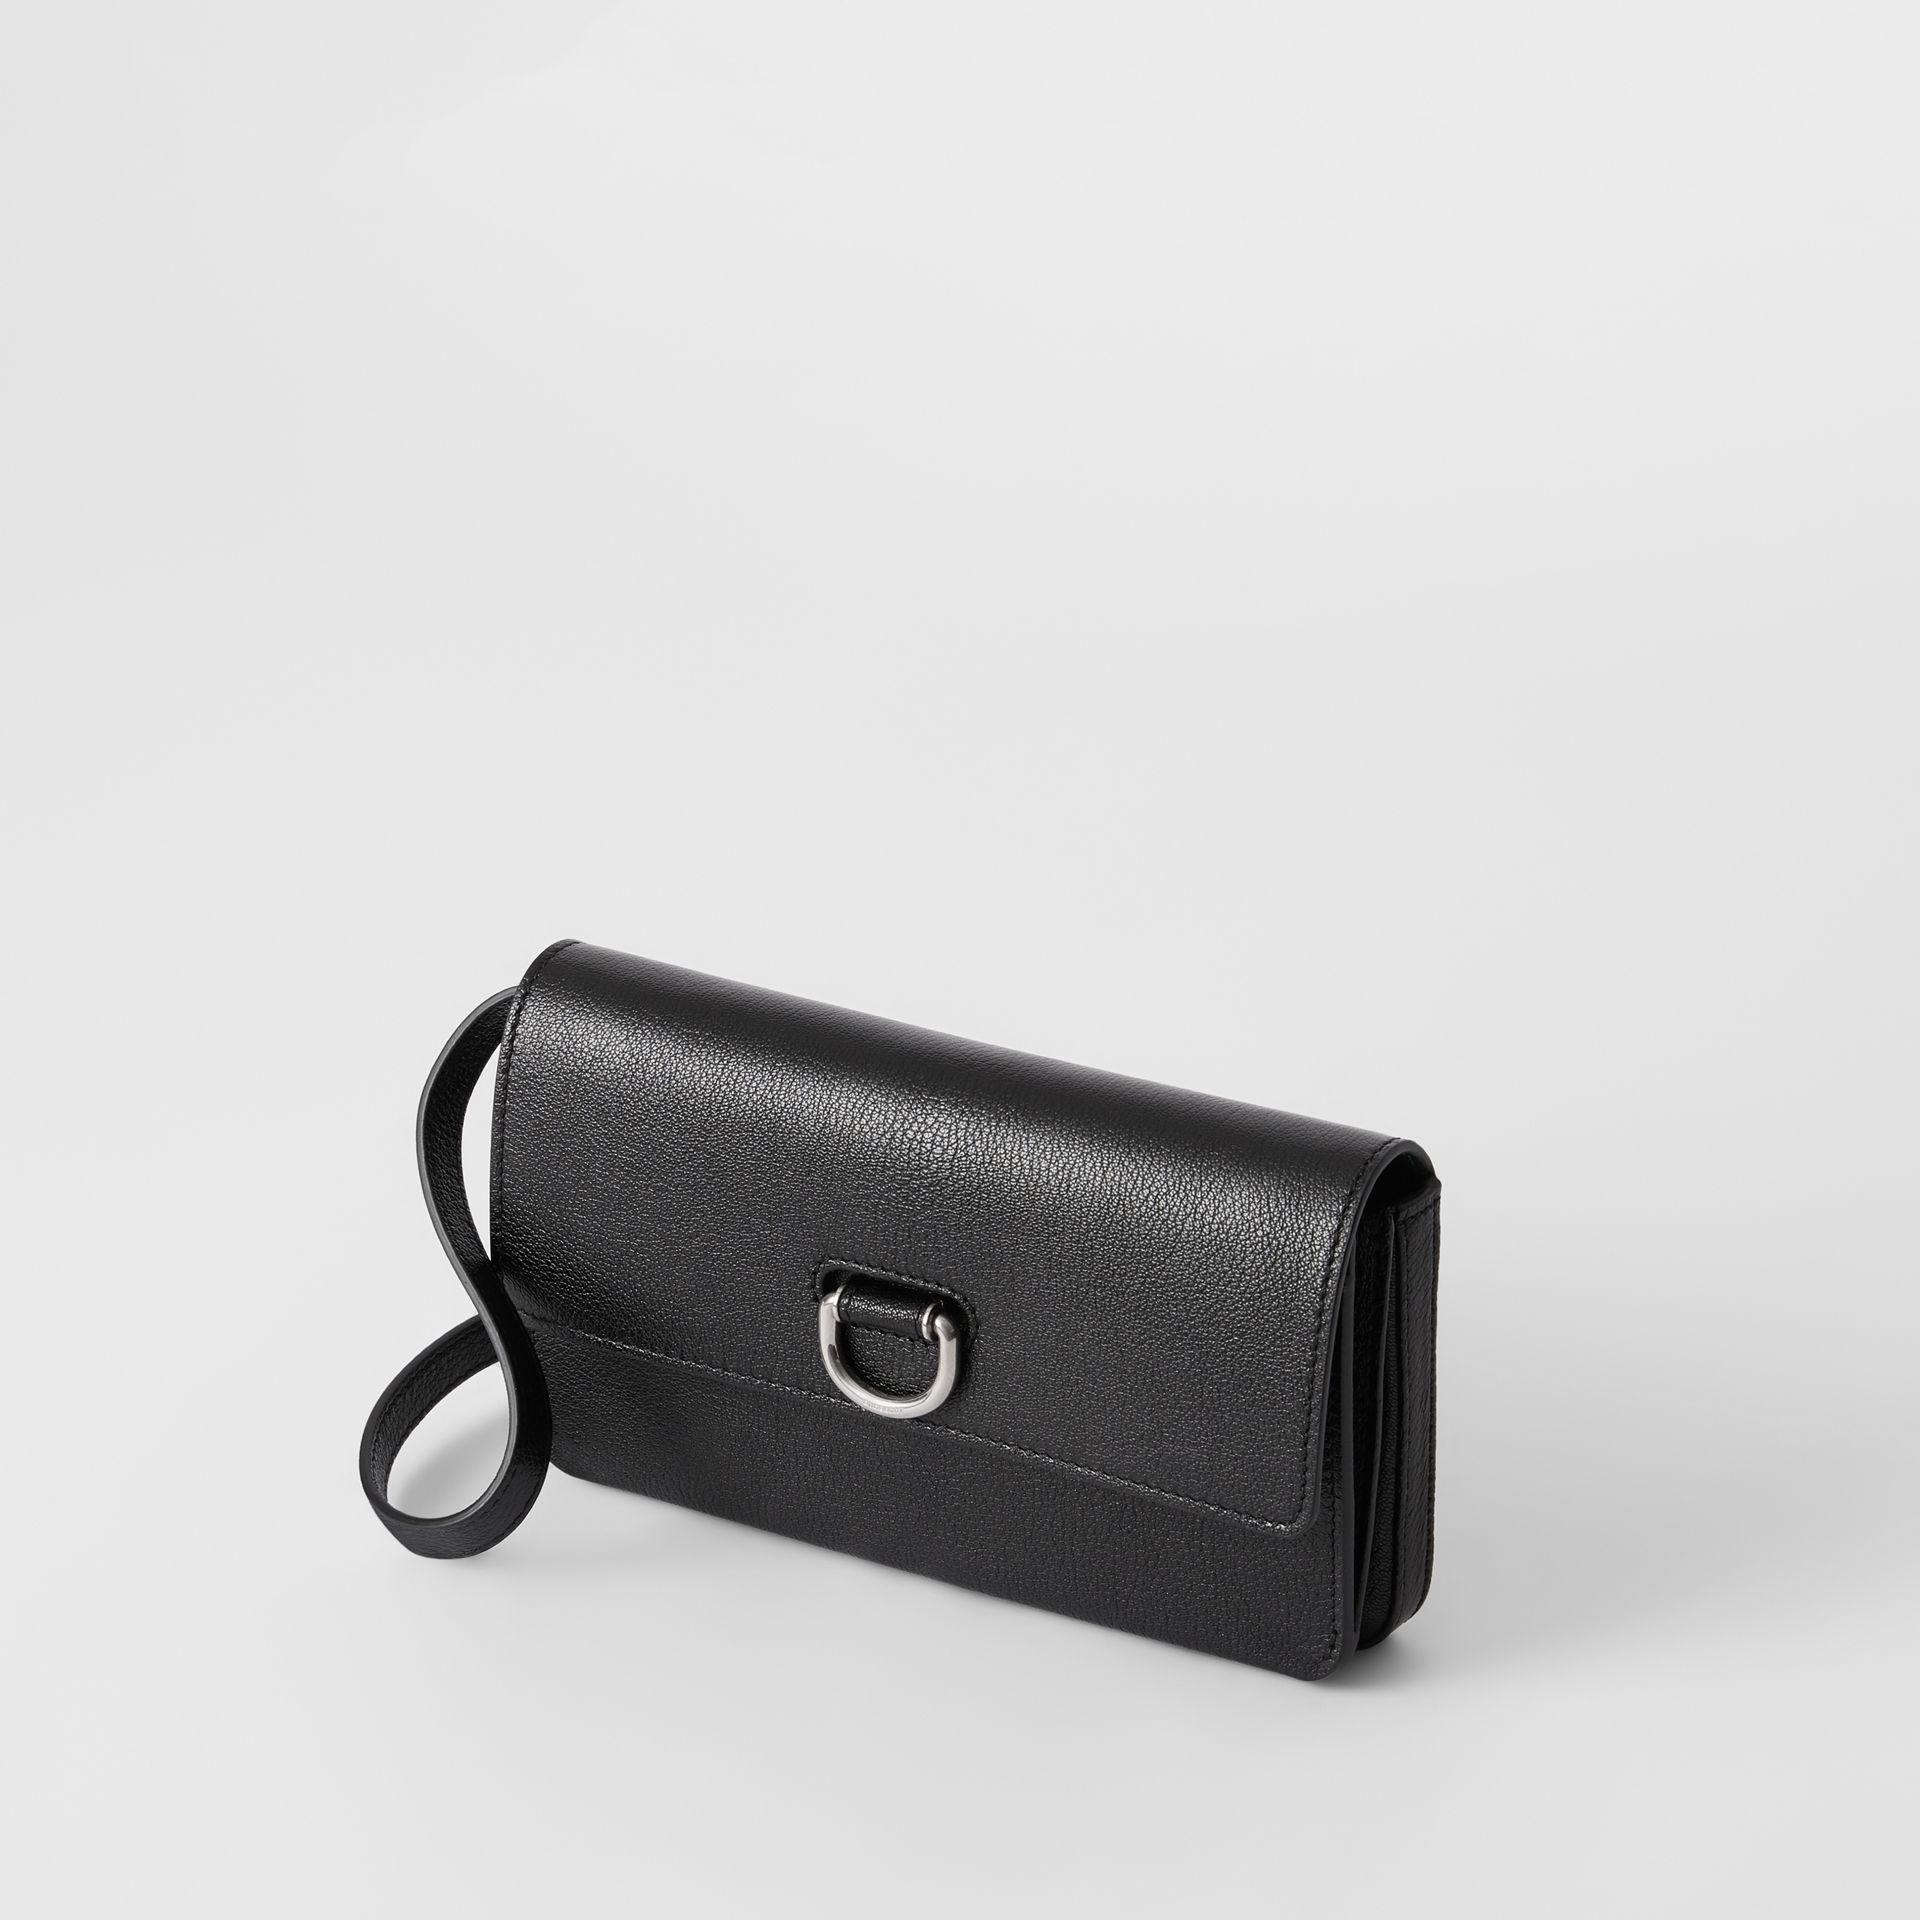 D-ring Leather Wallet with Detachable Strap in Black - Women | Burberry United Kingdom - gallery image 4